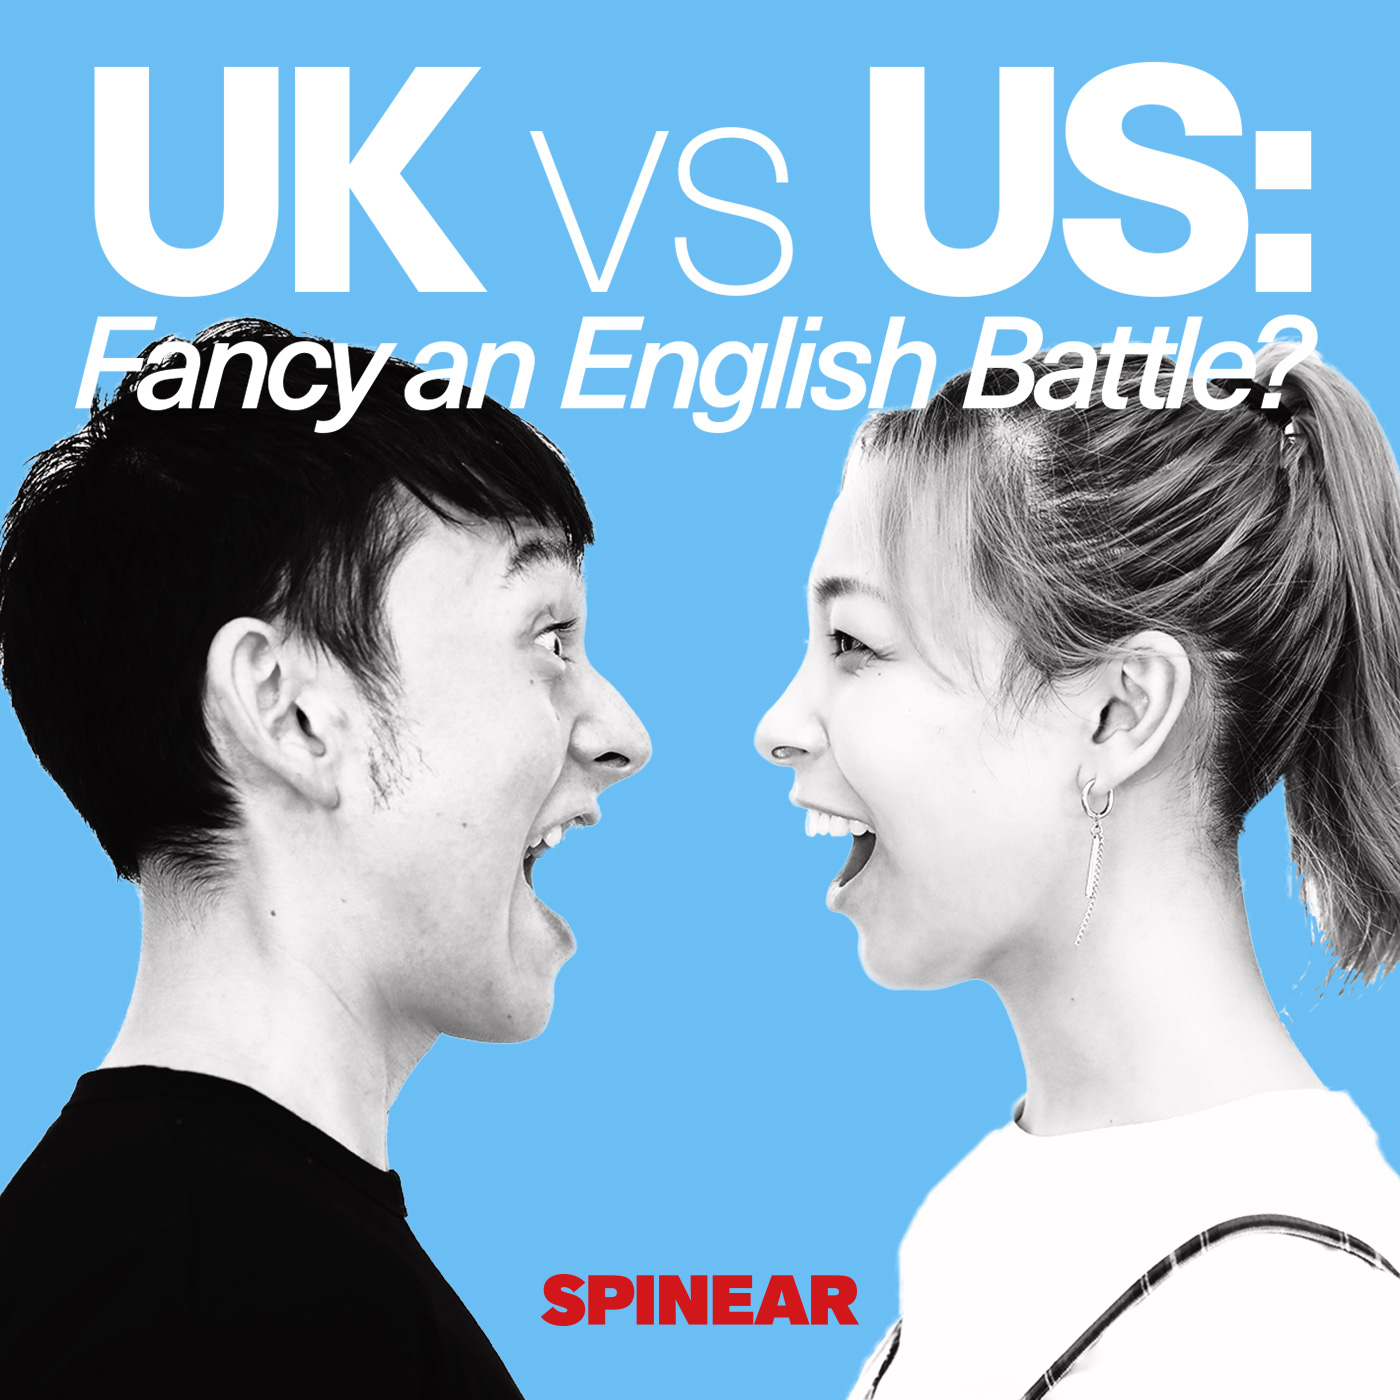 Lesson 28 - UK vs US: Fancy an English Battle?